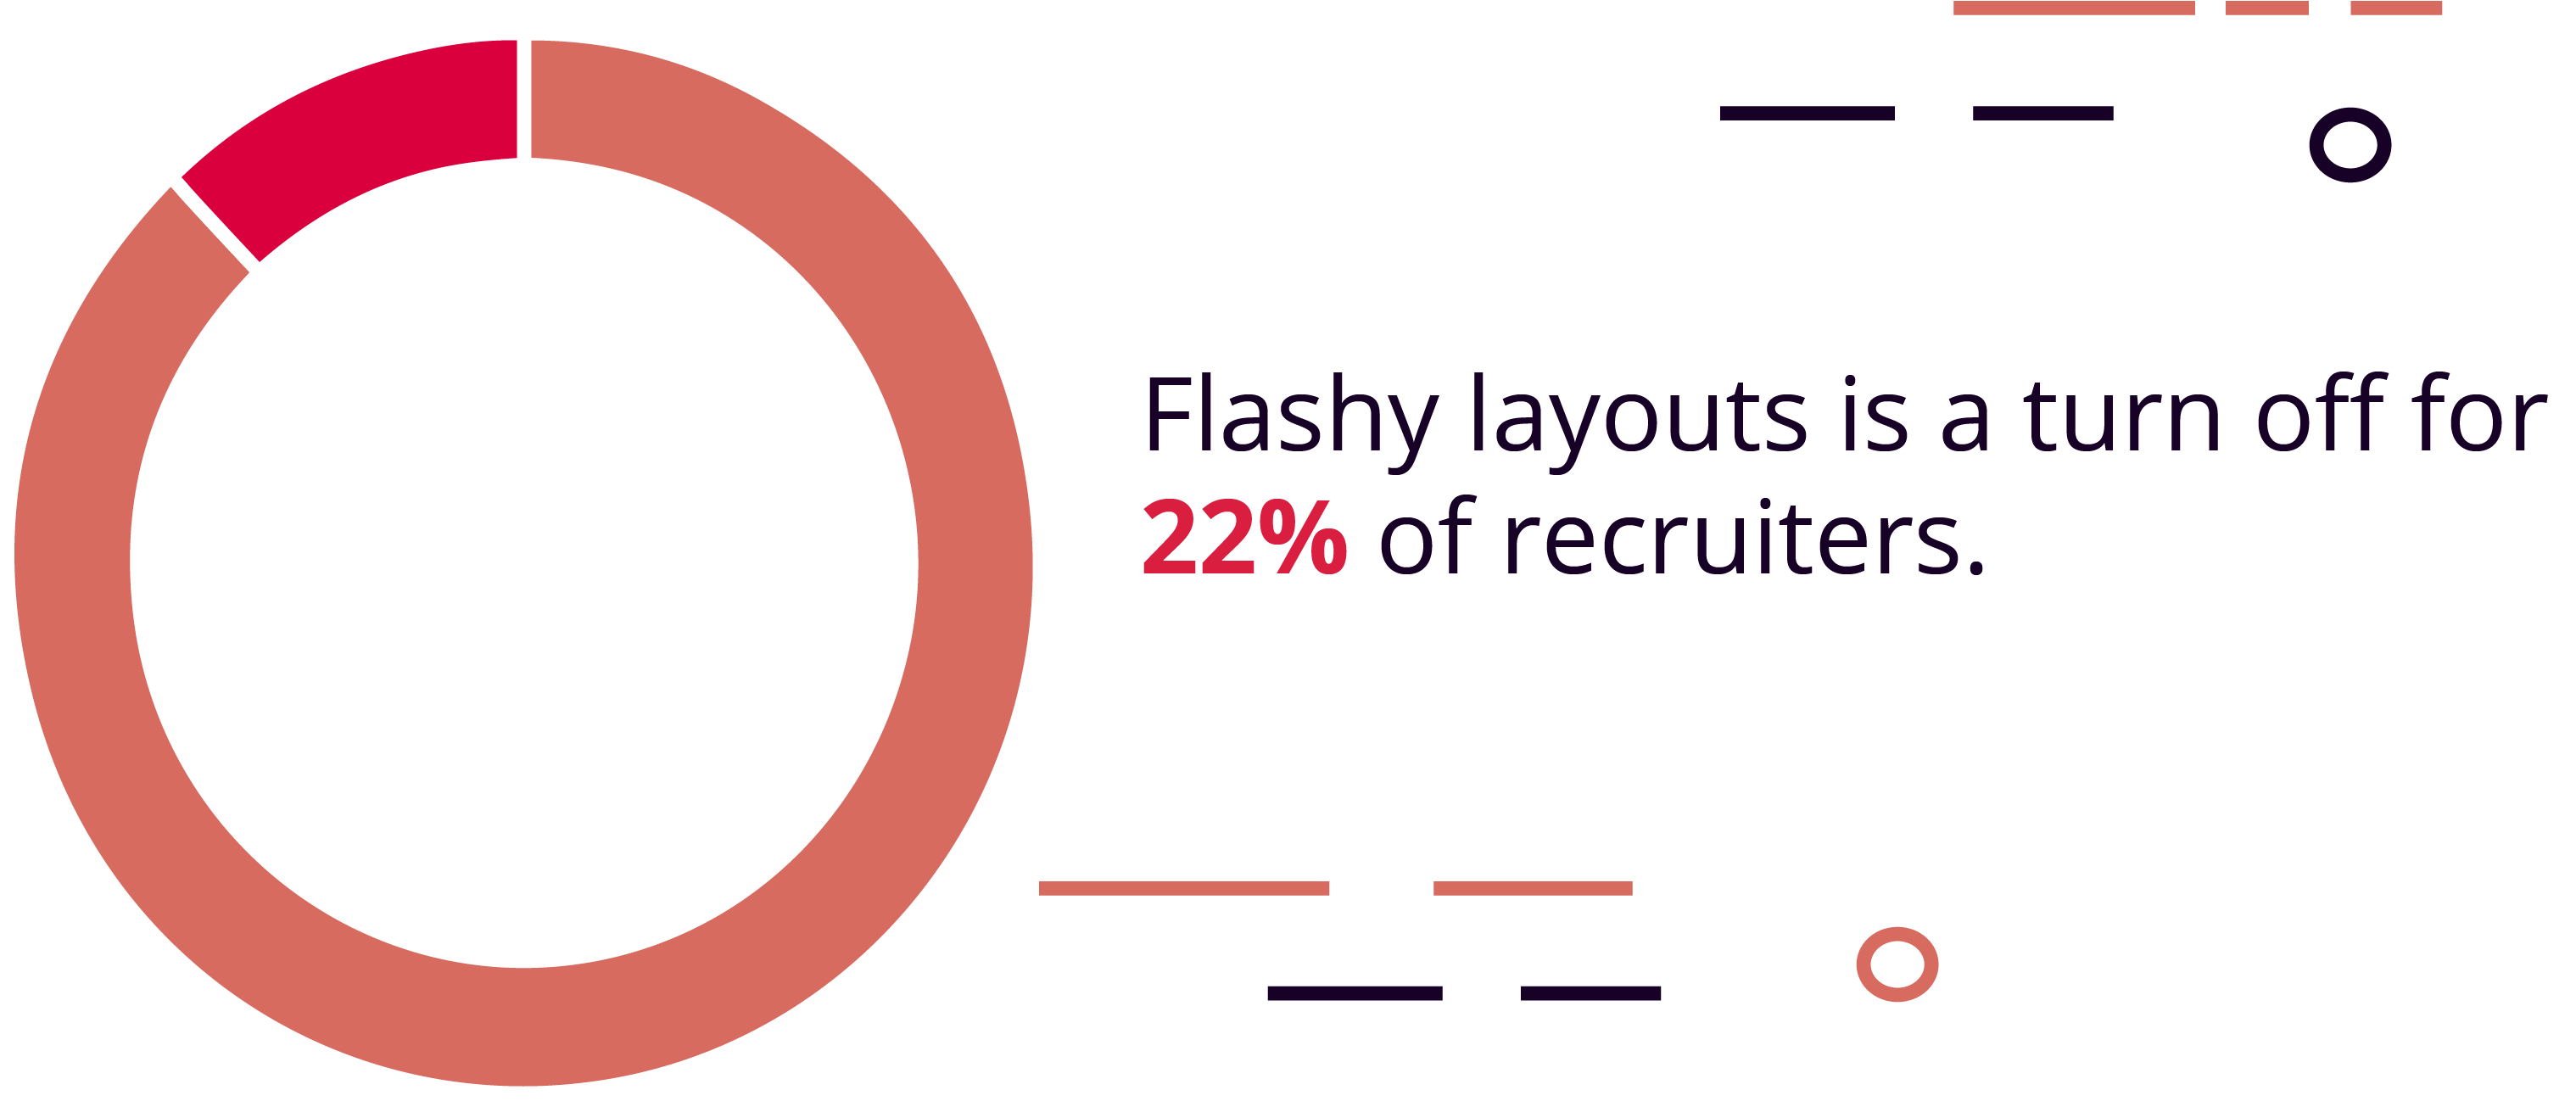 Flashy Layouts Are a Turn off for 22% of Recruiters and Hiring Managers